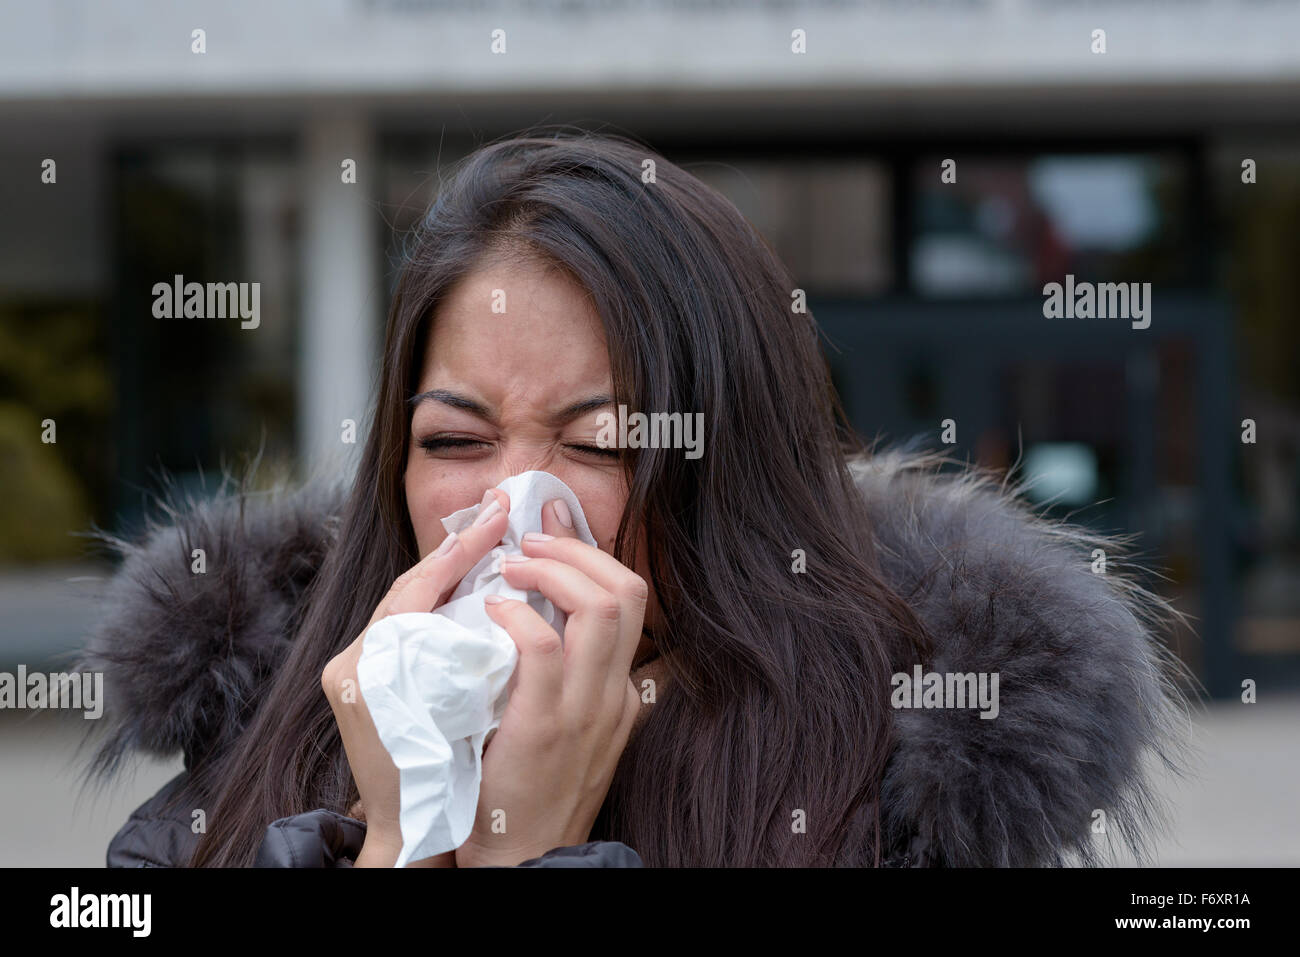 Woman with a seasonal winter cold and flu standing outdoors on an urban street in a furry jacket blowing her nose - Stock Image